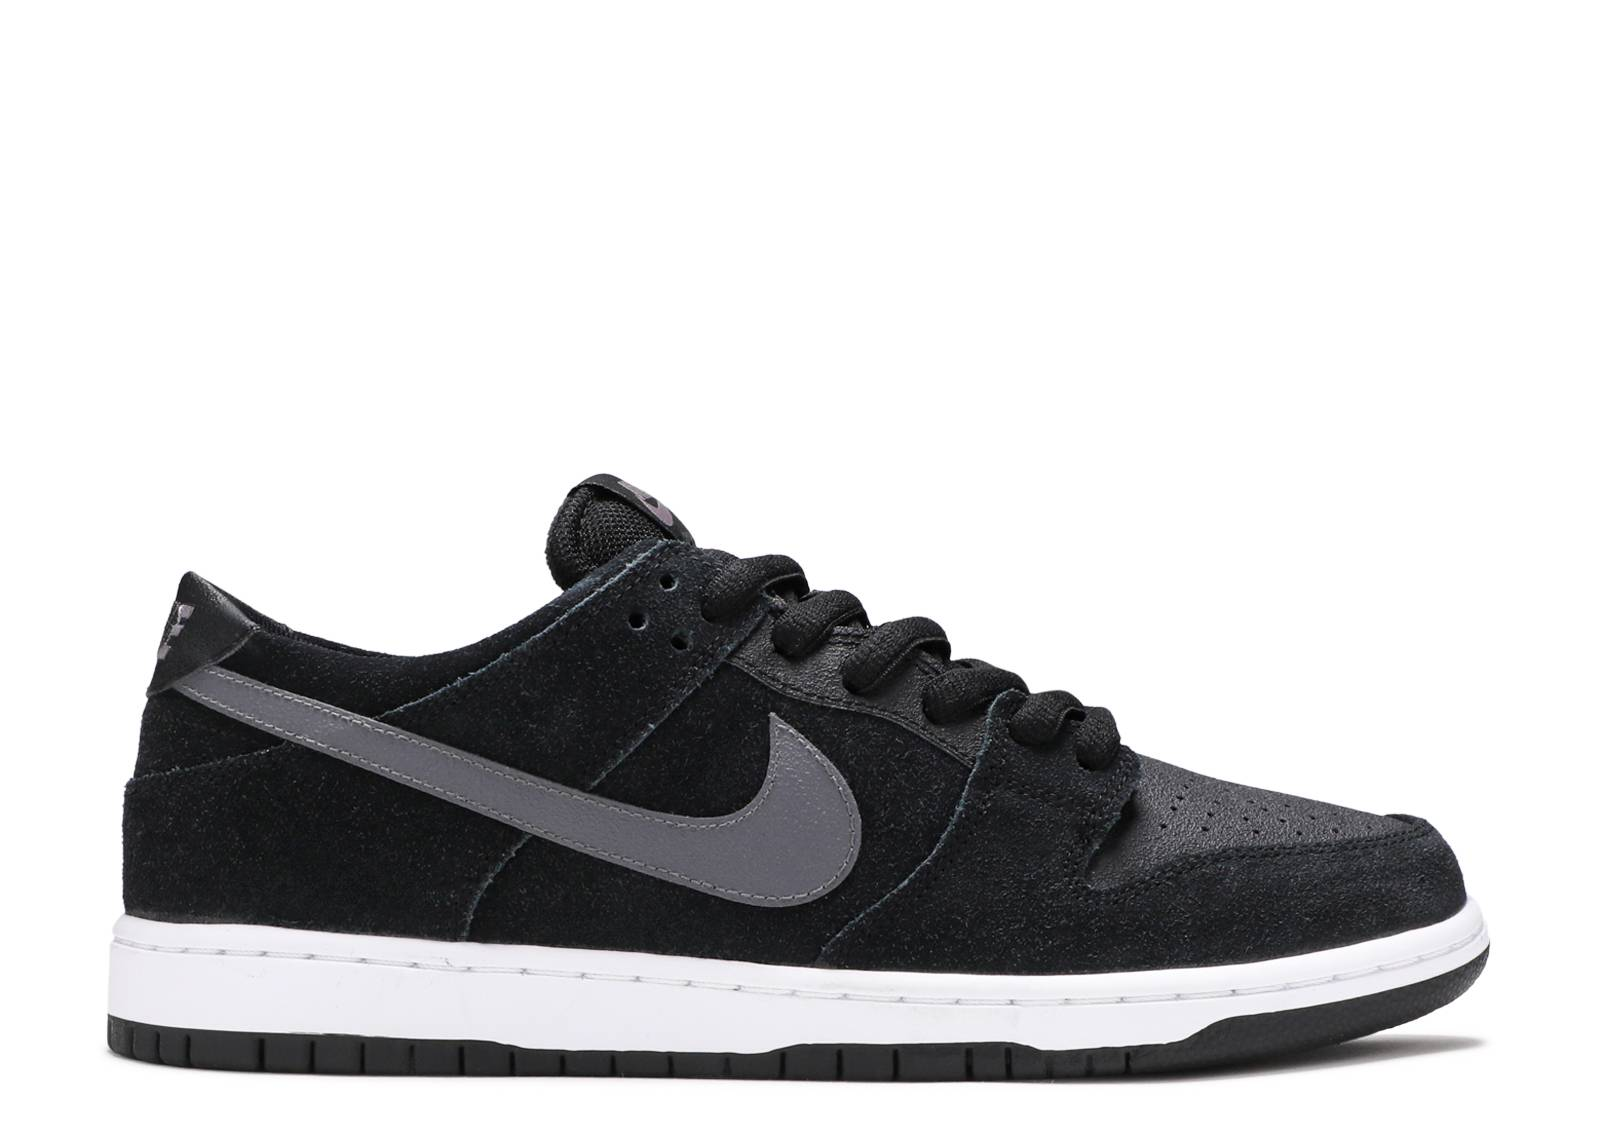 "tom ford jennifer tf8 - dunk low pro iw ""ishod wair"" - black / lt graphite-white - Nike ..."